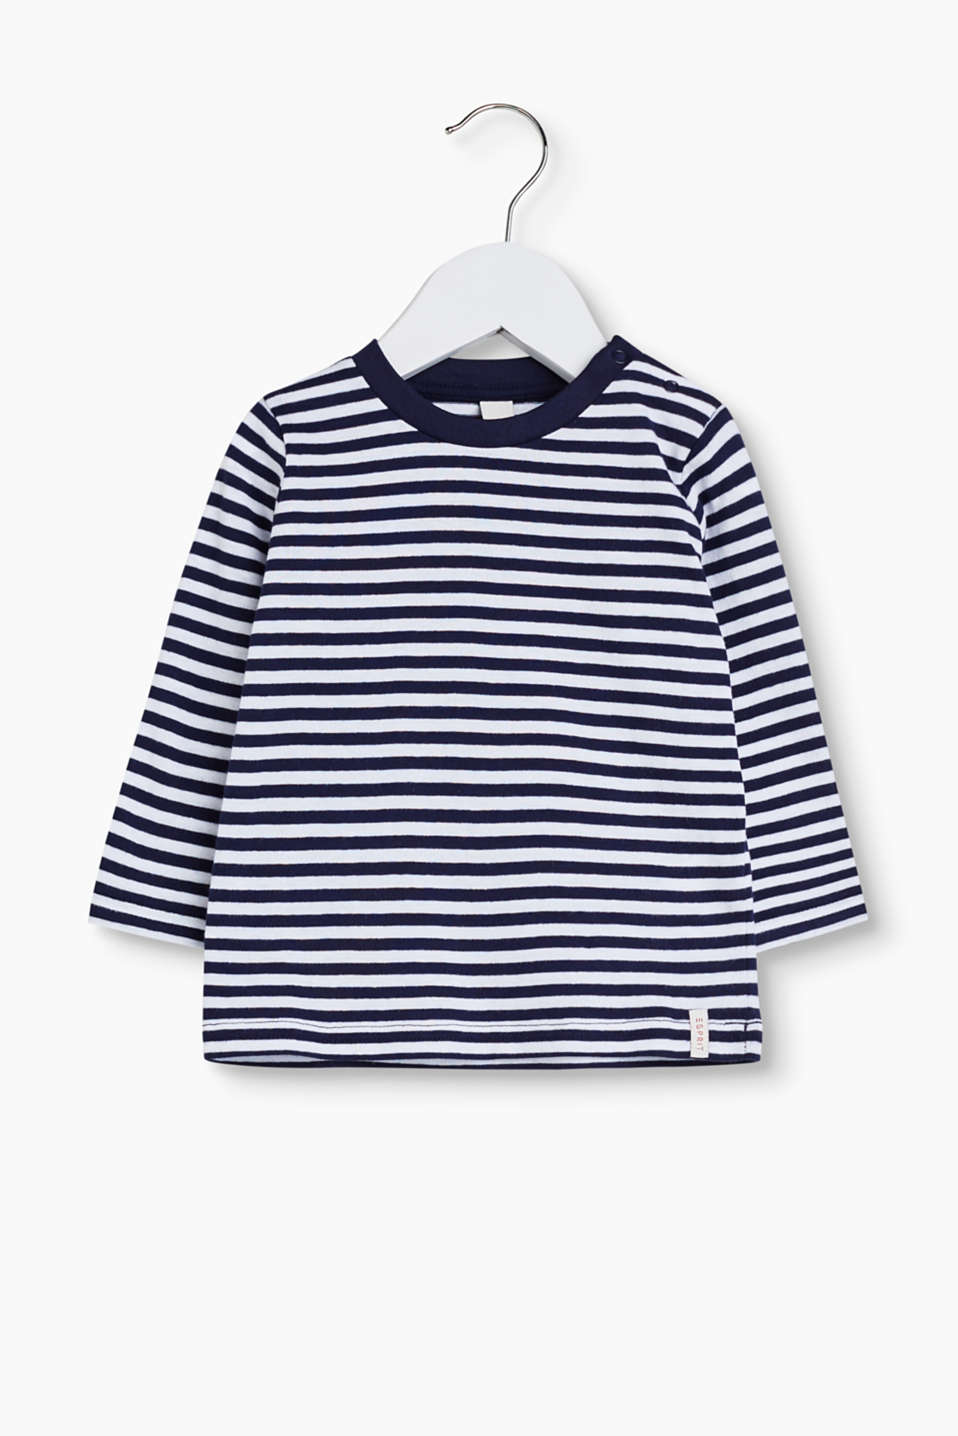 With a stripe pattern: basic T-shirt in soft cotton jersey